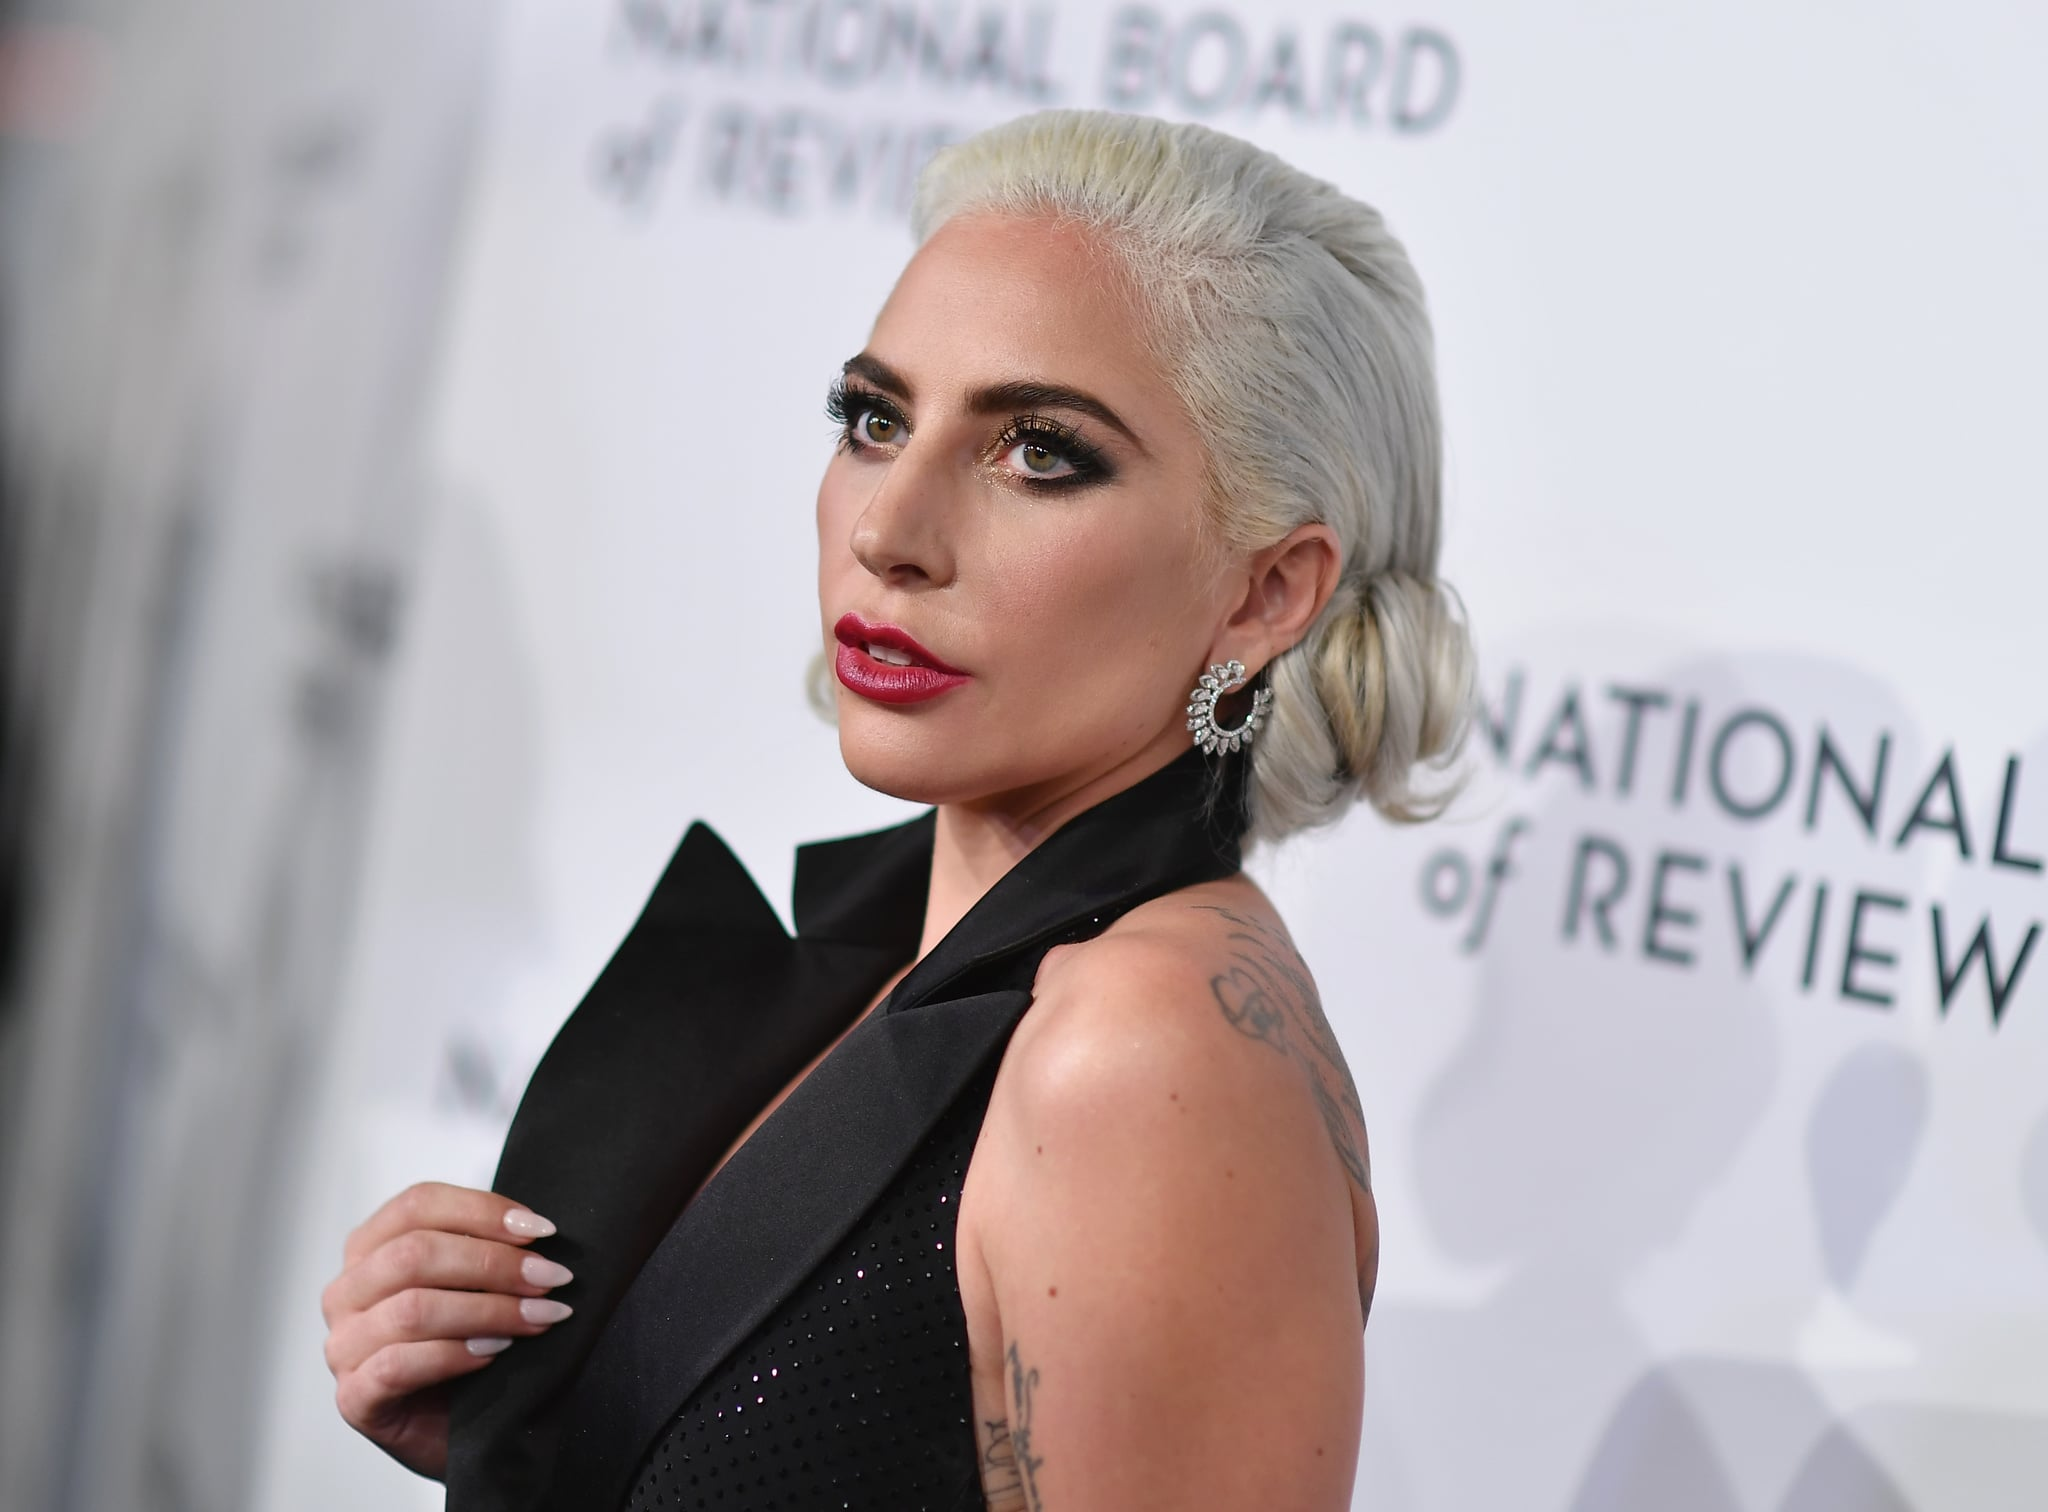 Actress/singer Lady Gaga attends the 2019 National Board Of Review Gala at Cipriani 42nd Street on January 08, 2019 in New York City. (Photo by Angela Weiss / AFP)        (Photo credit should read ANGELA WEISS/AFP/Getty Images)